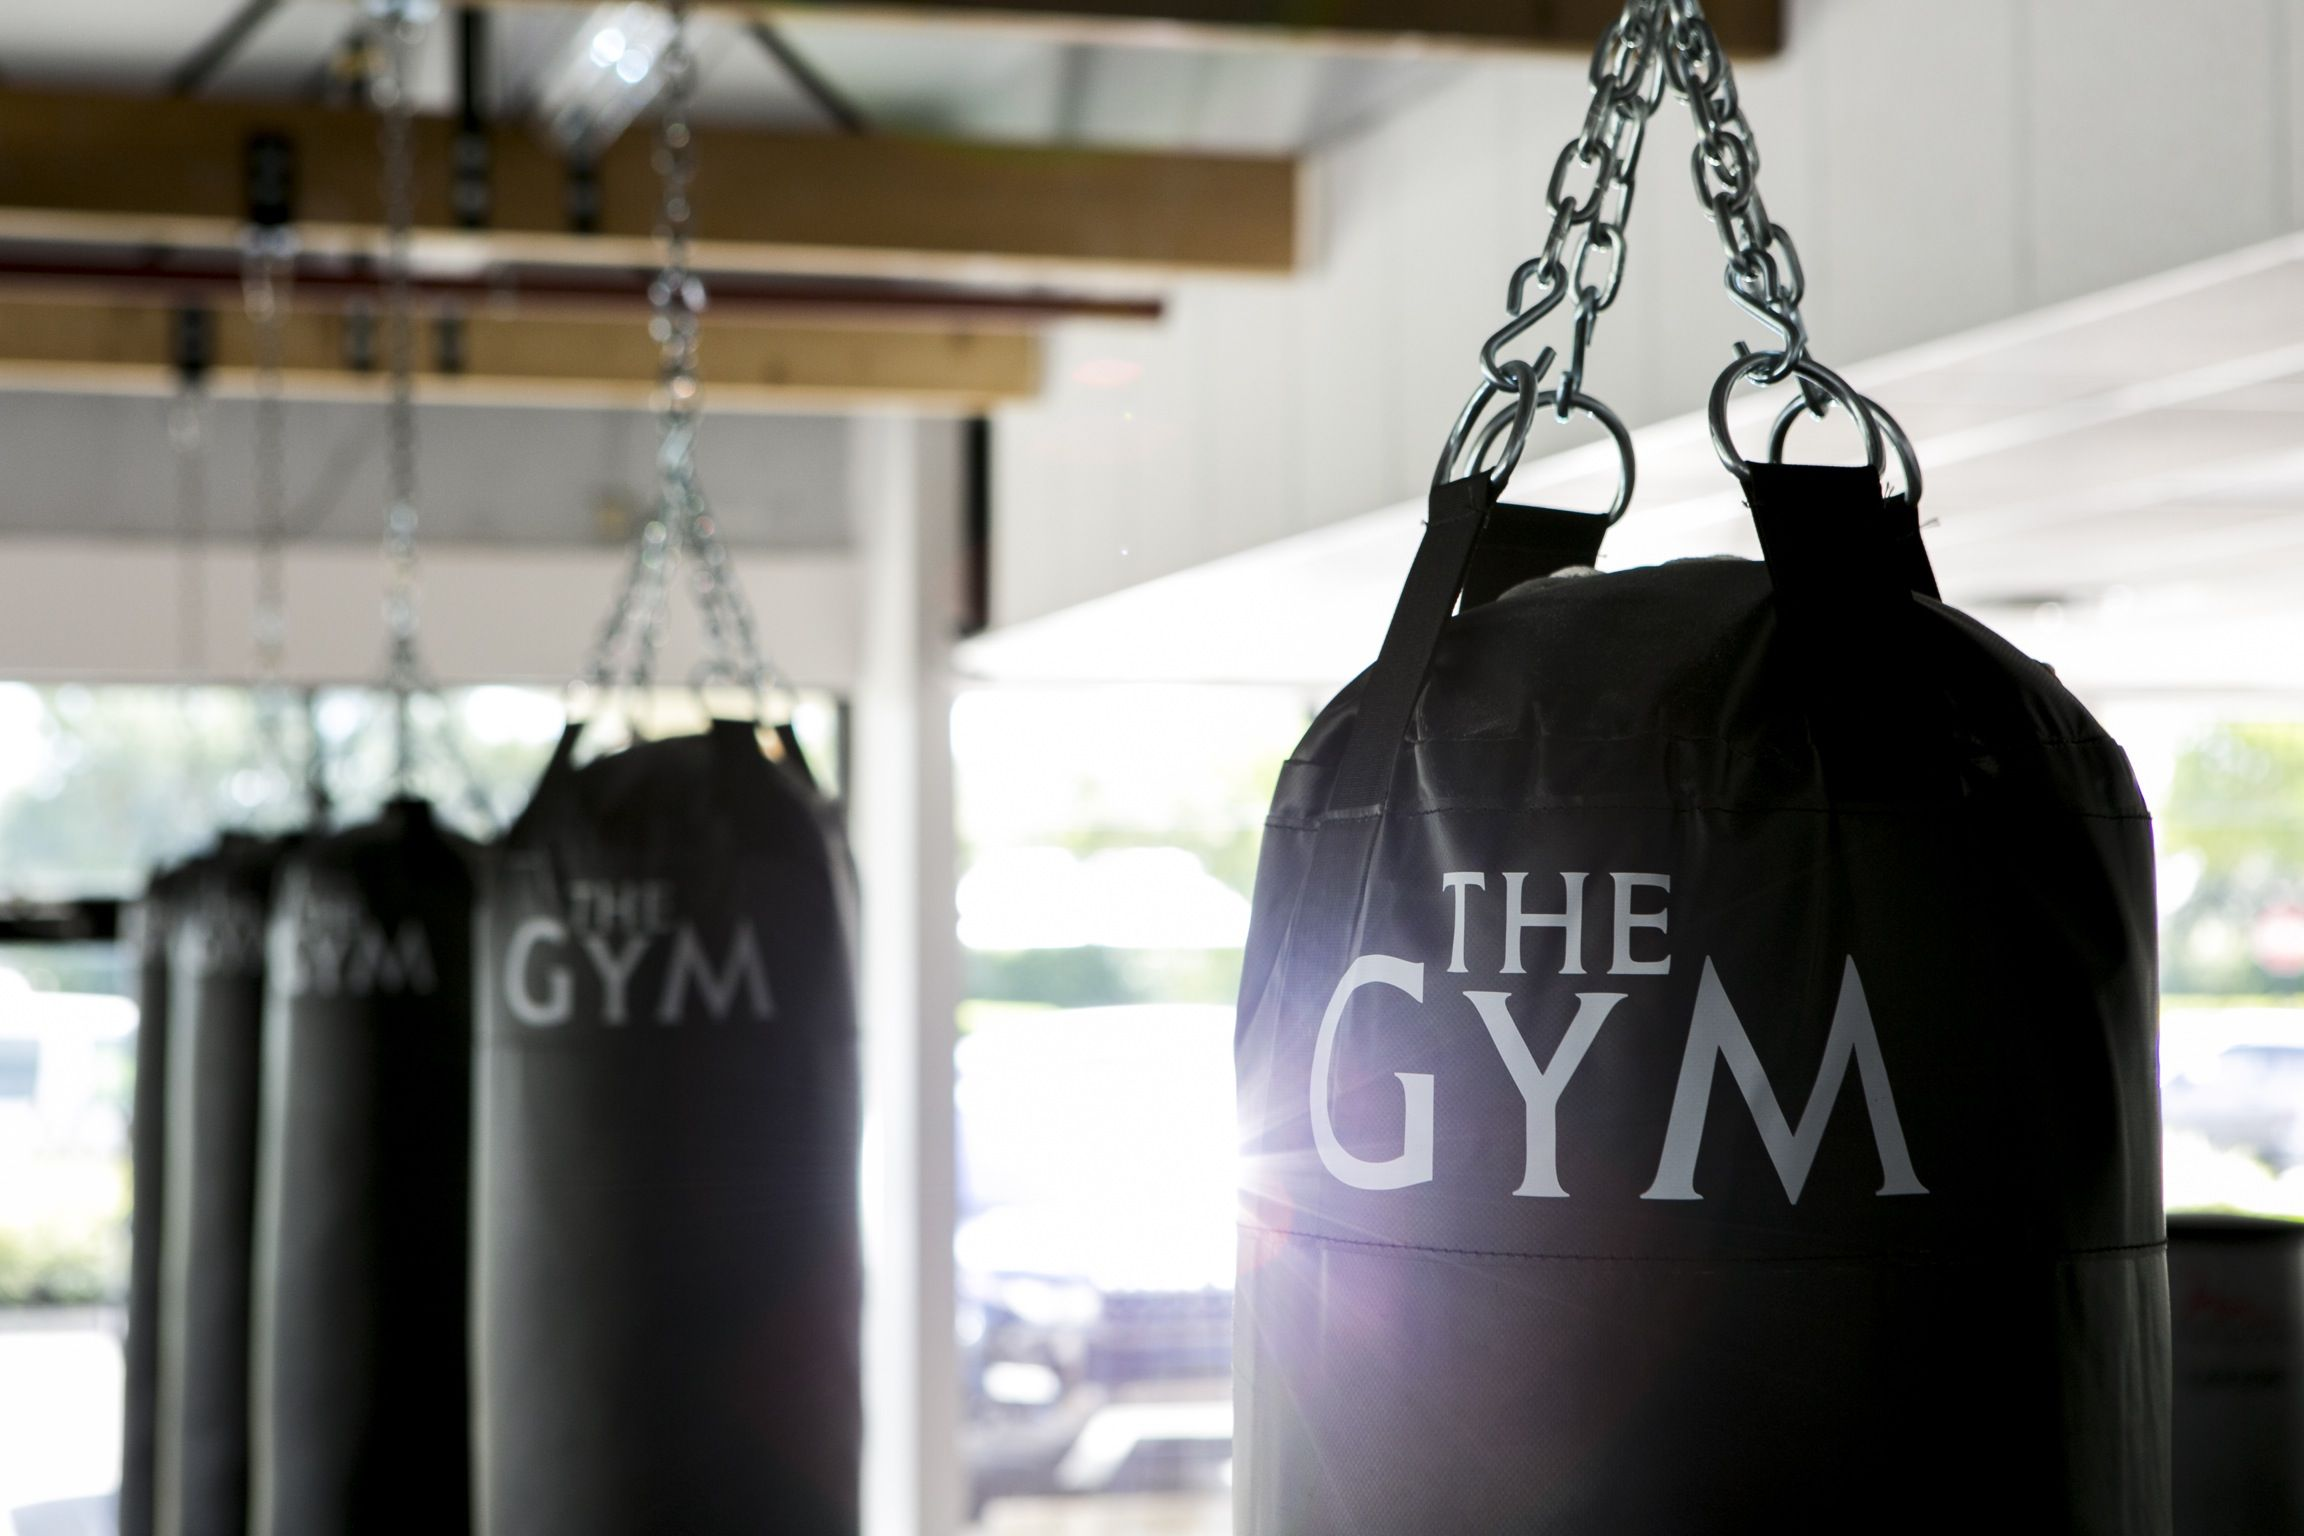 The Gym Boxing and Fitness located in Pembroke Pines, FL